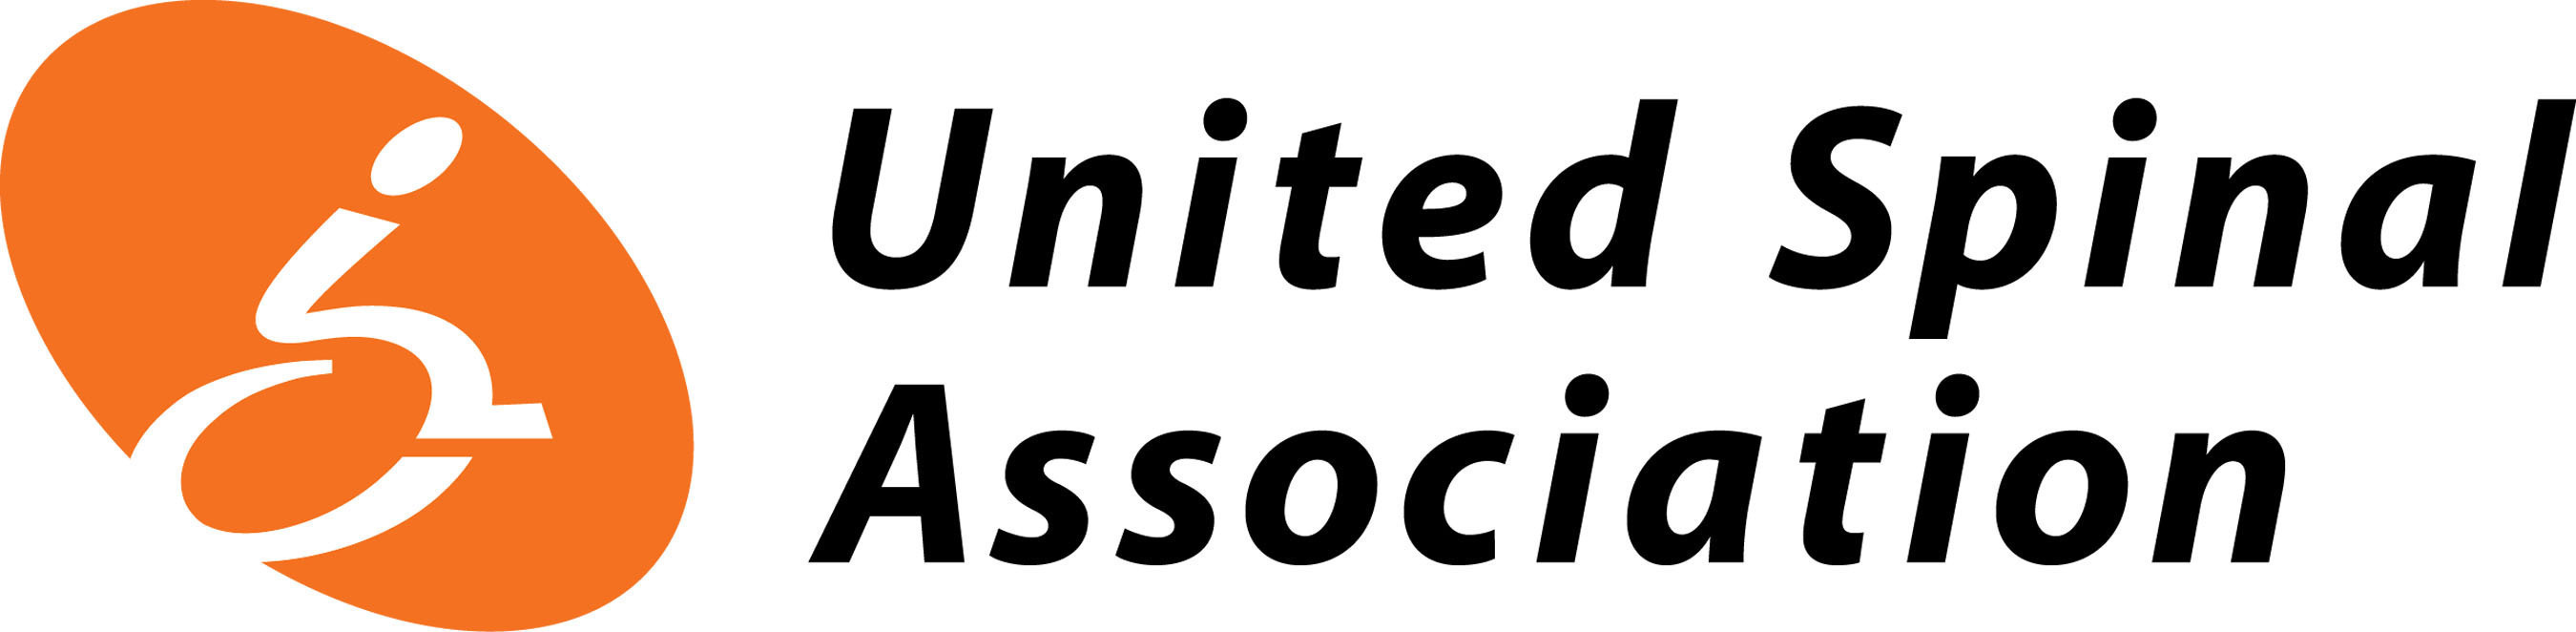 United Spinal Association.